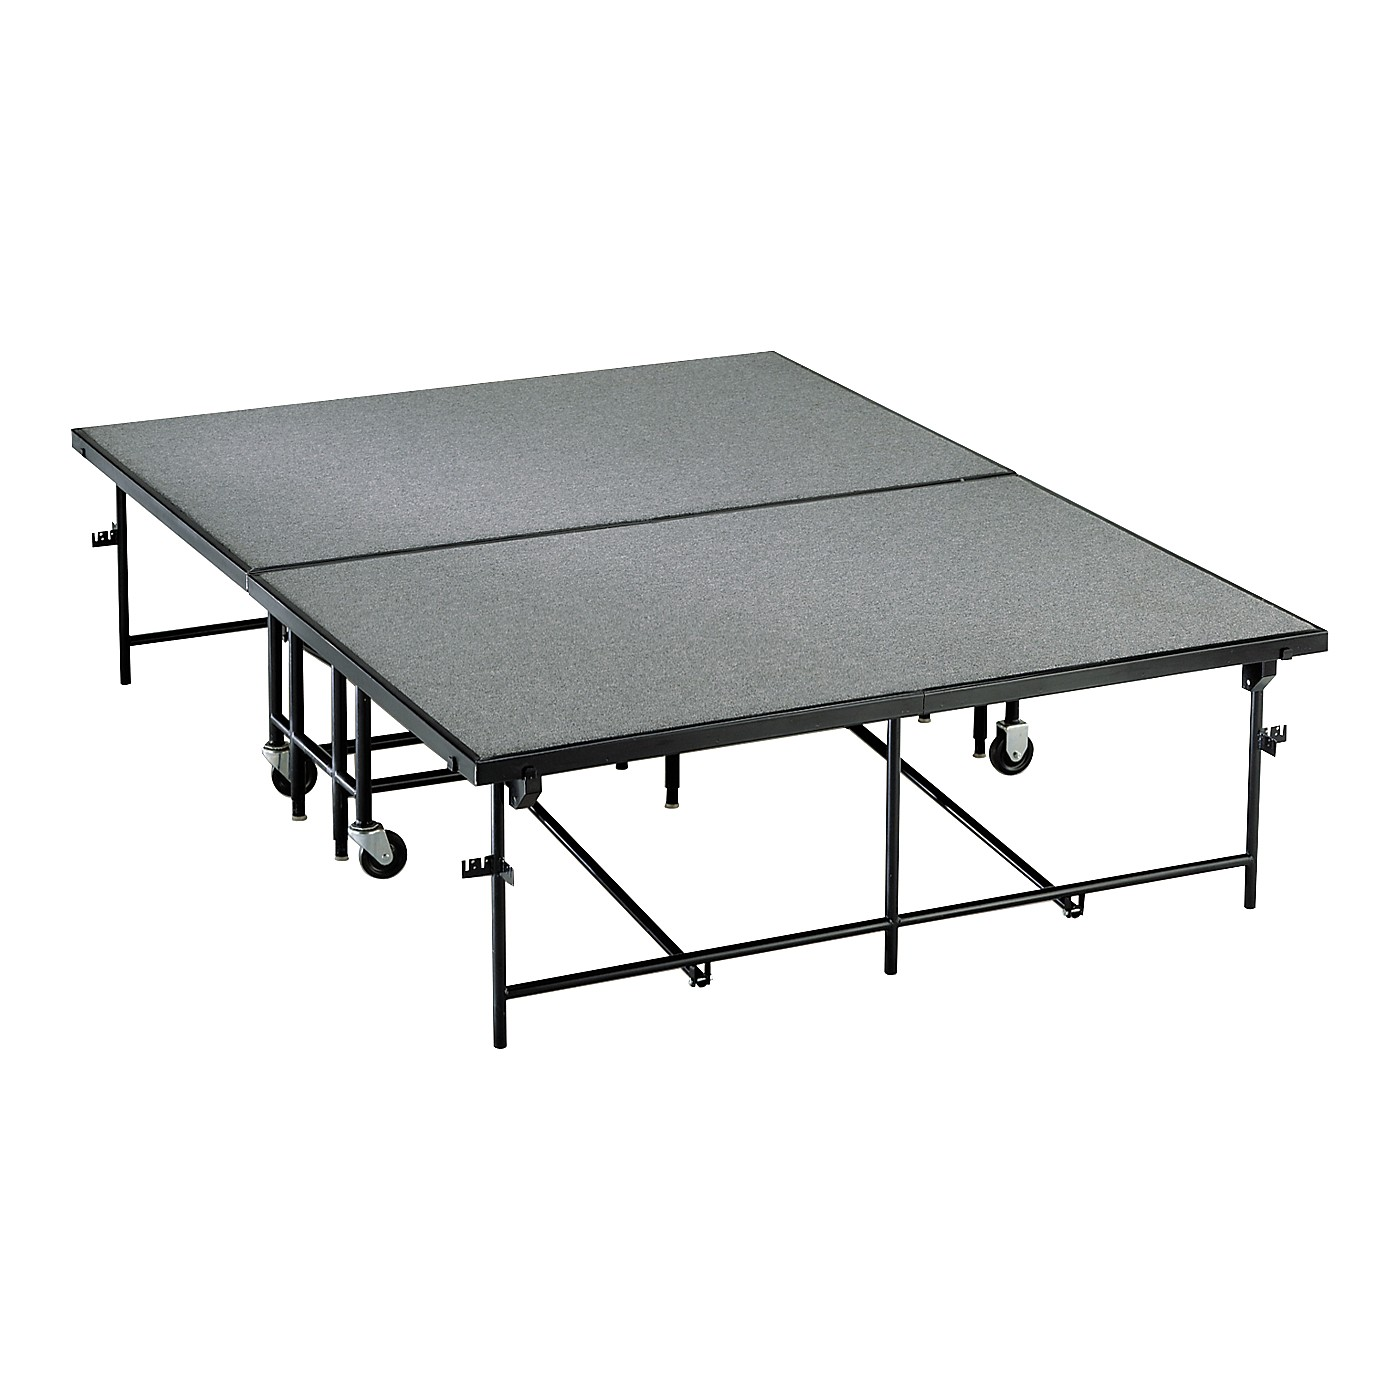 Midwest Folding Products 6' Deep X 8' Wide  Mobile Stage thumbnail